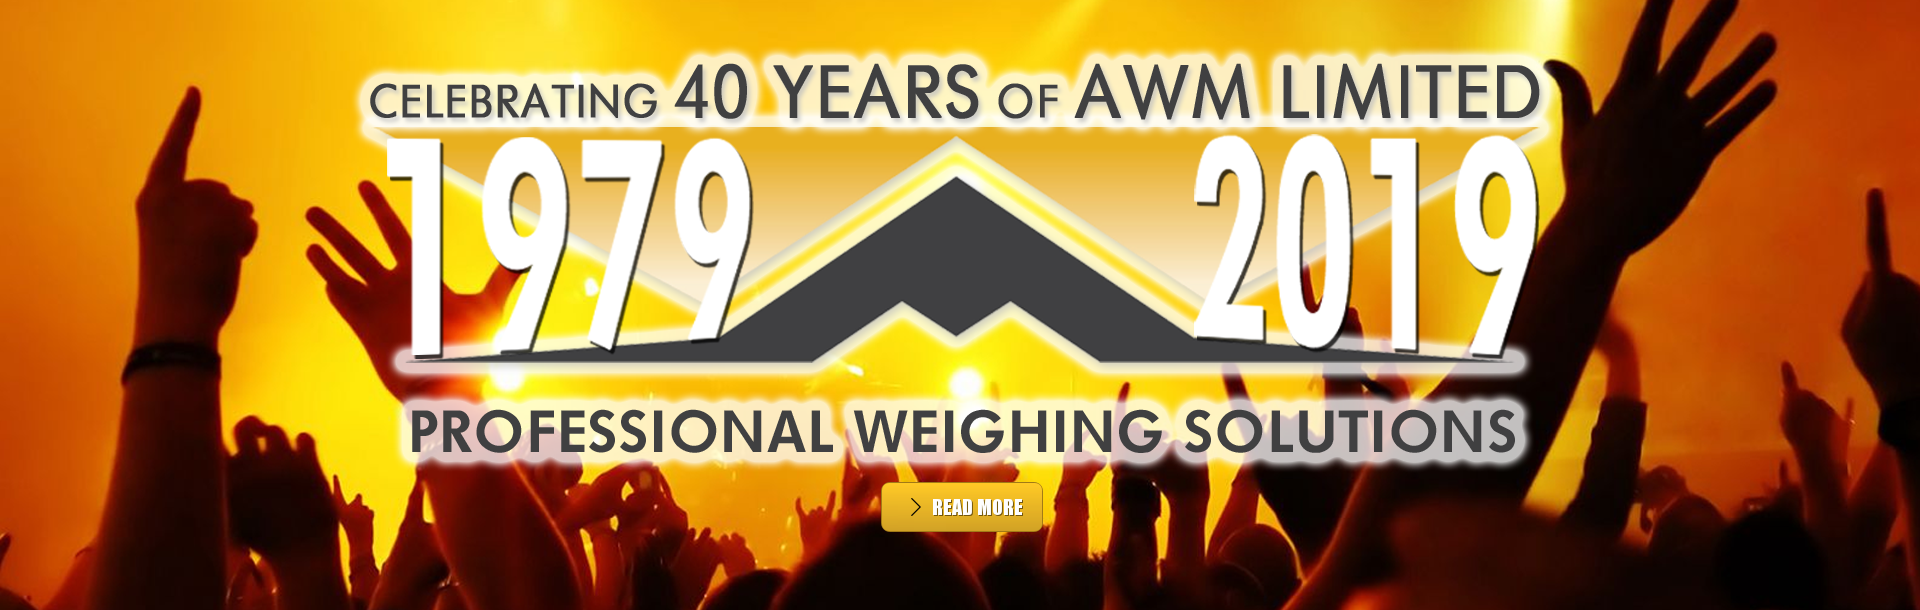 40 Years of AWM Limited